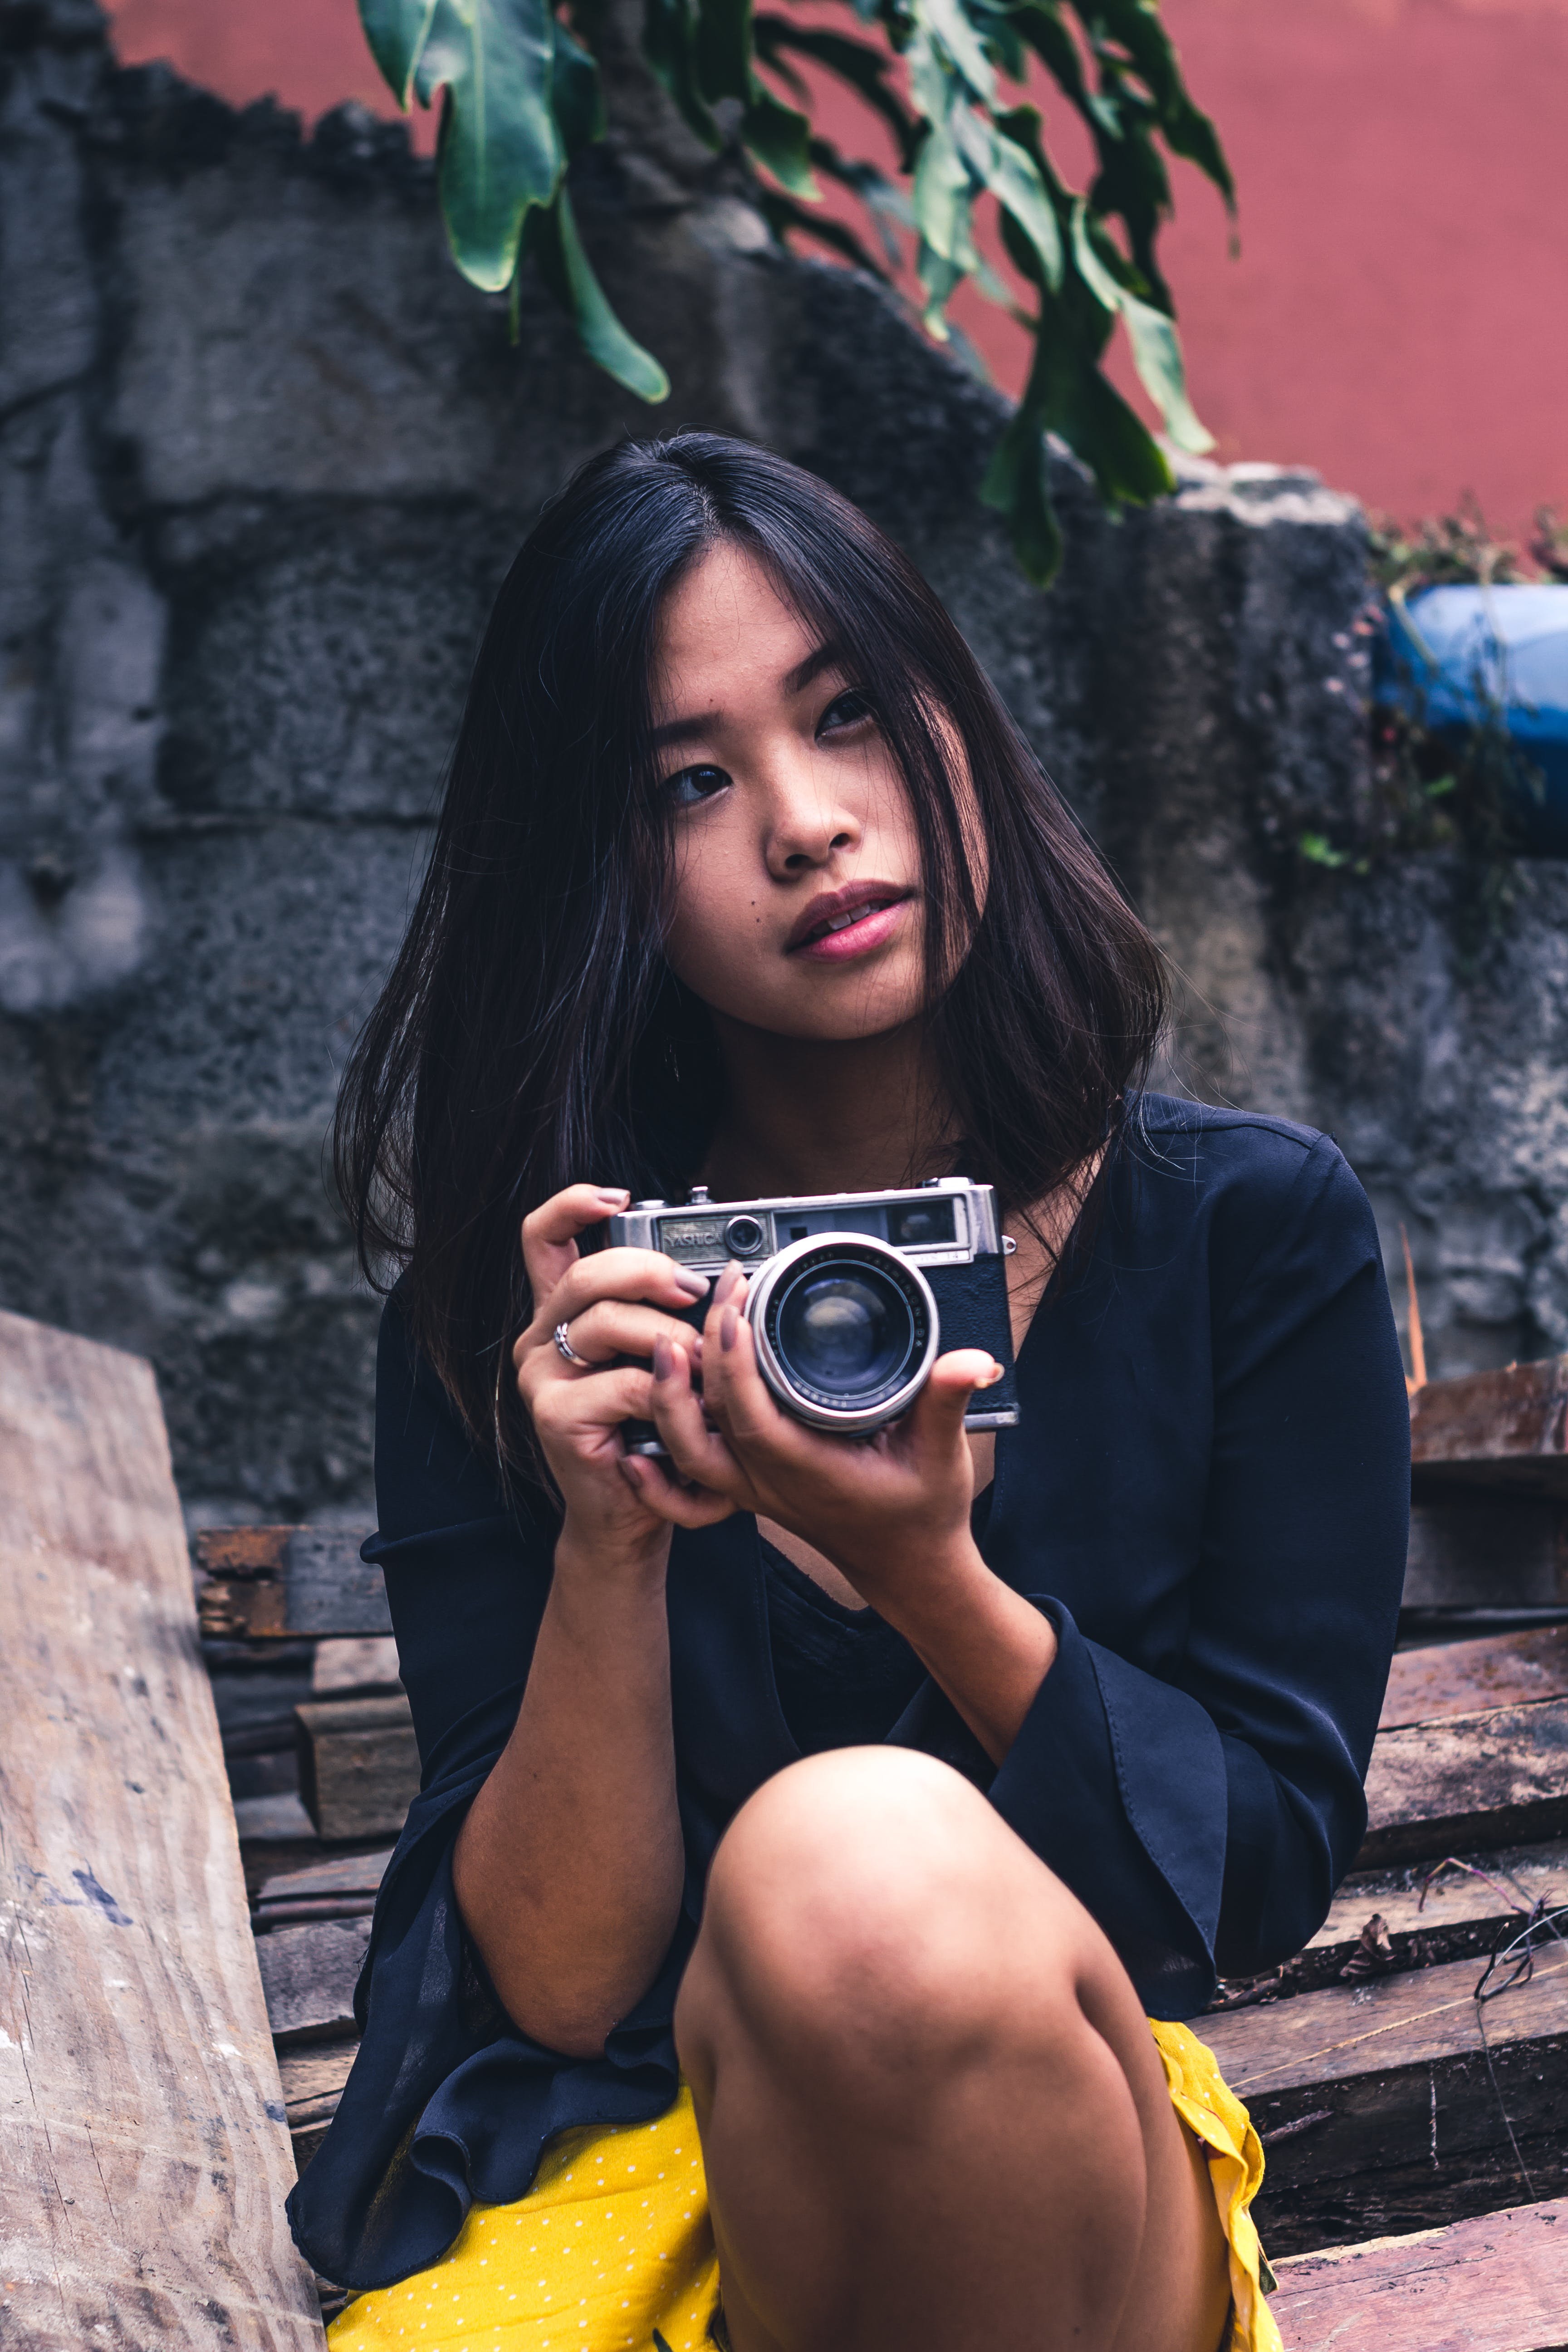 Woman Holding Camera on Both Hands